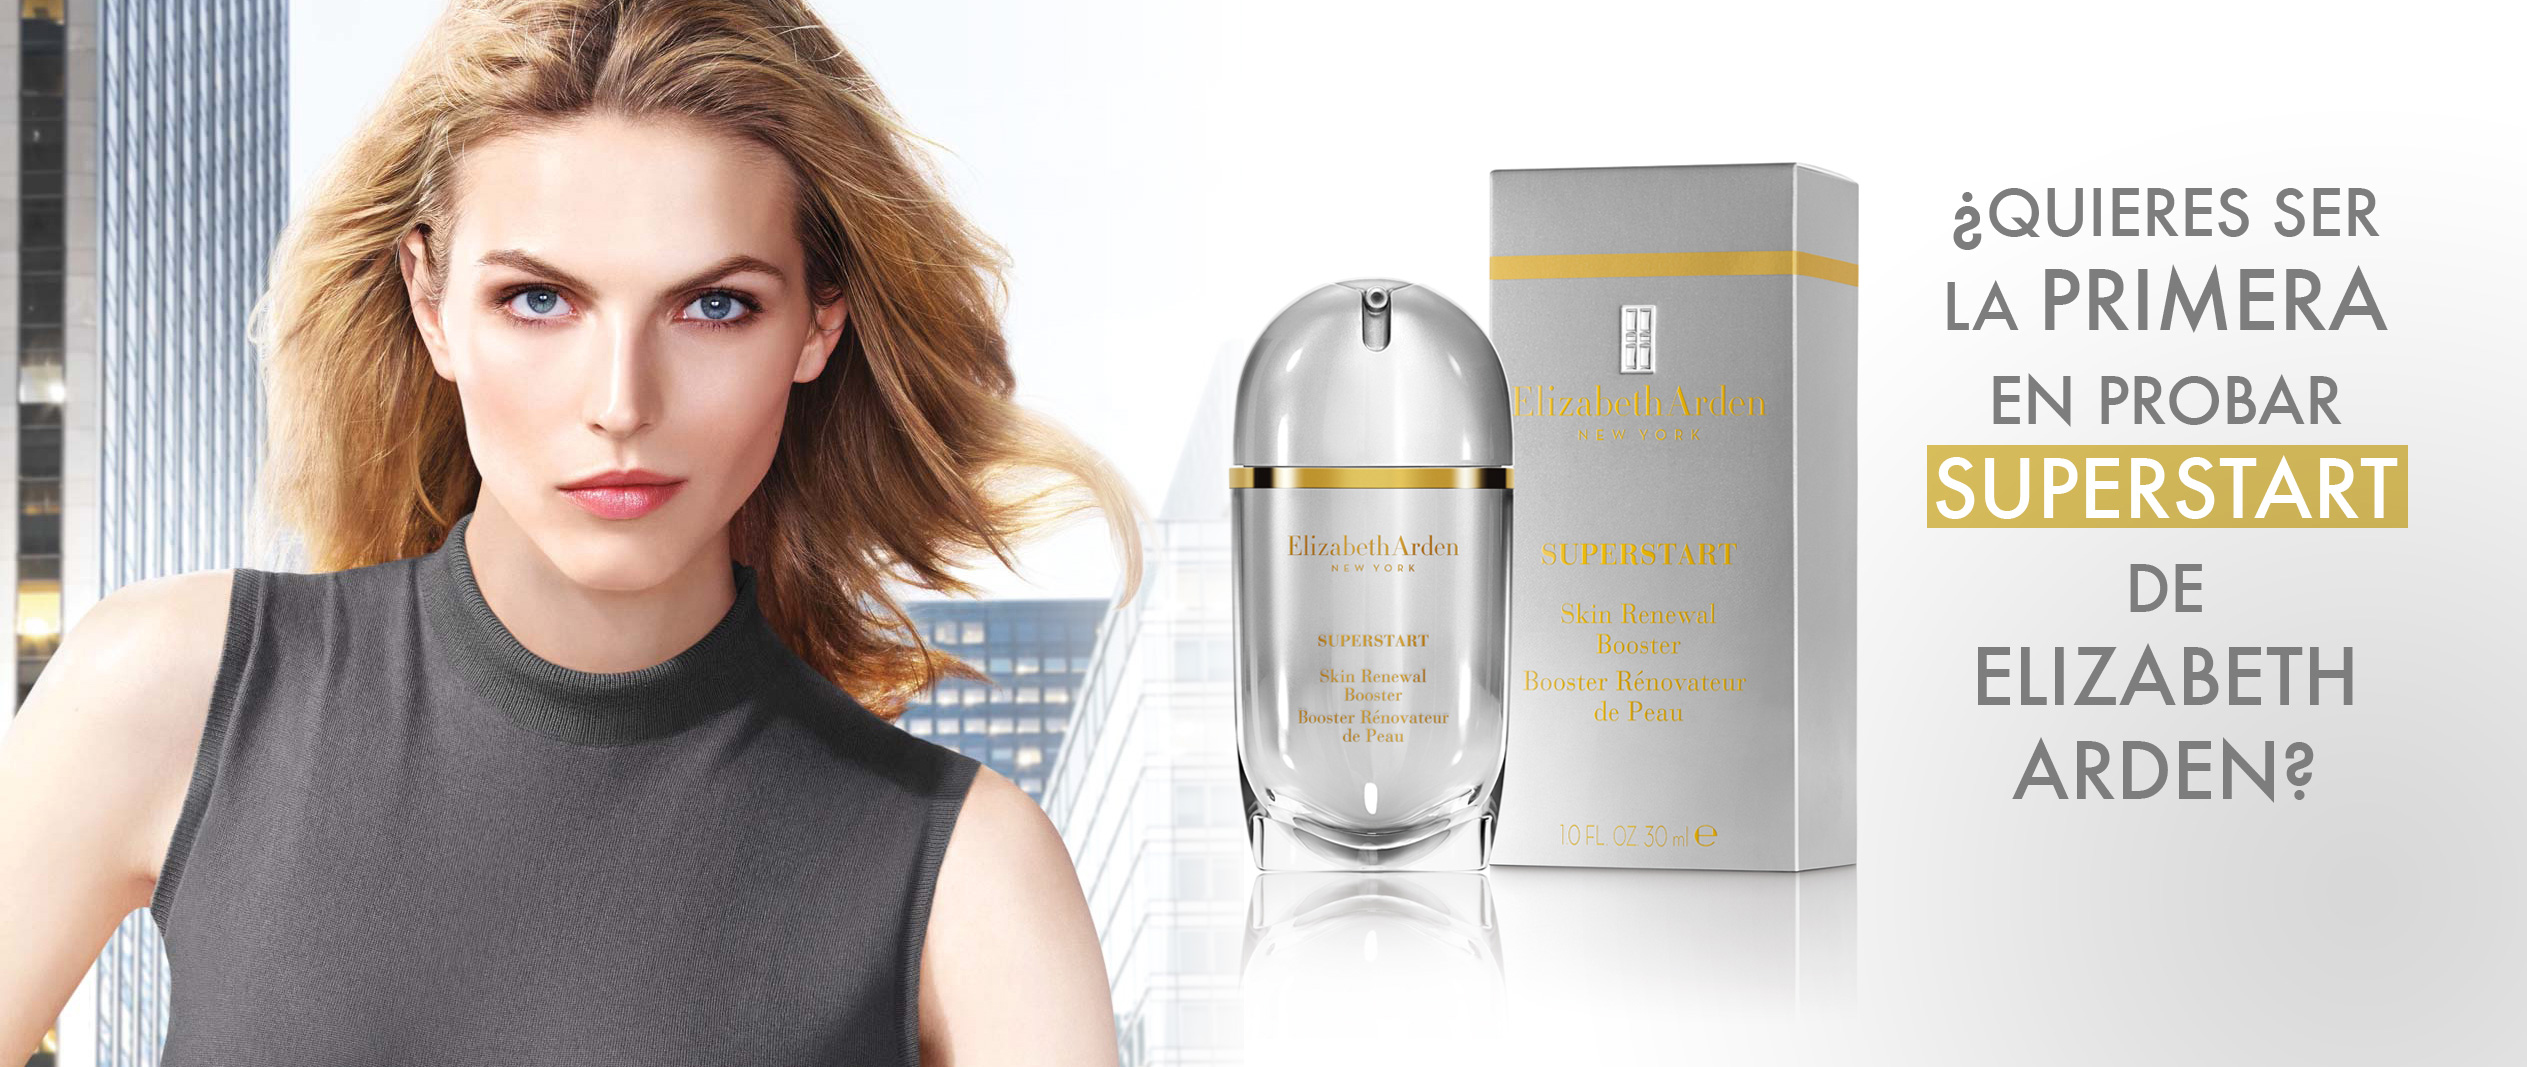 VISUAL-SUPERSTART Elizabeth Arden-concurso